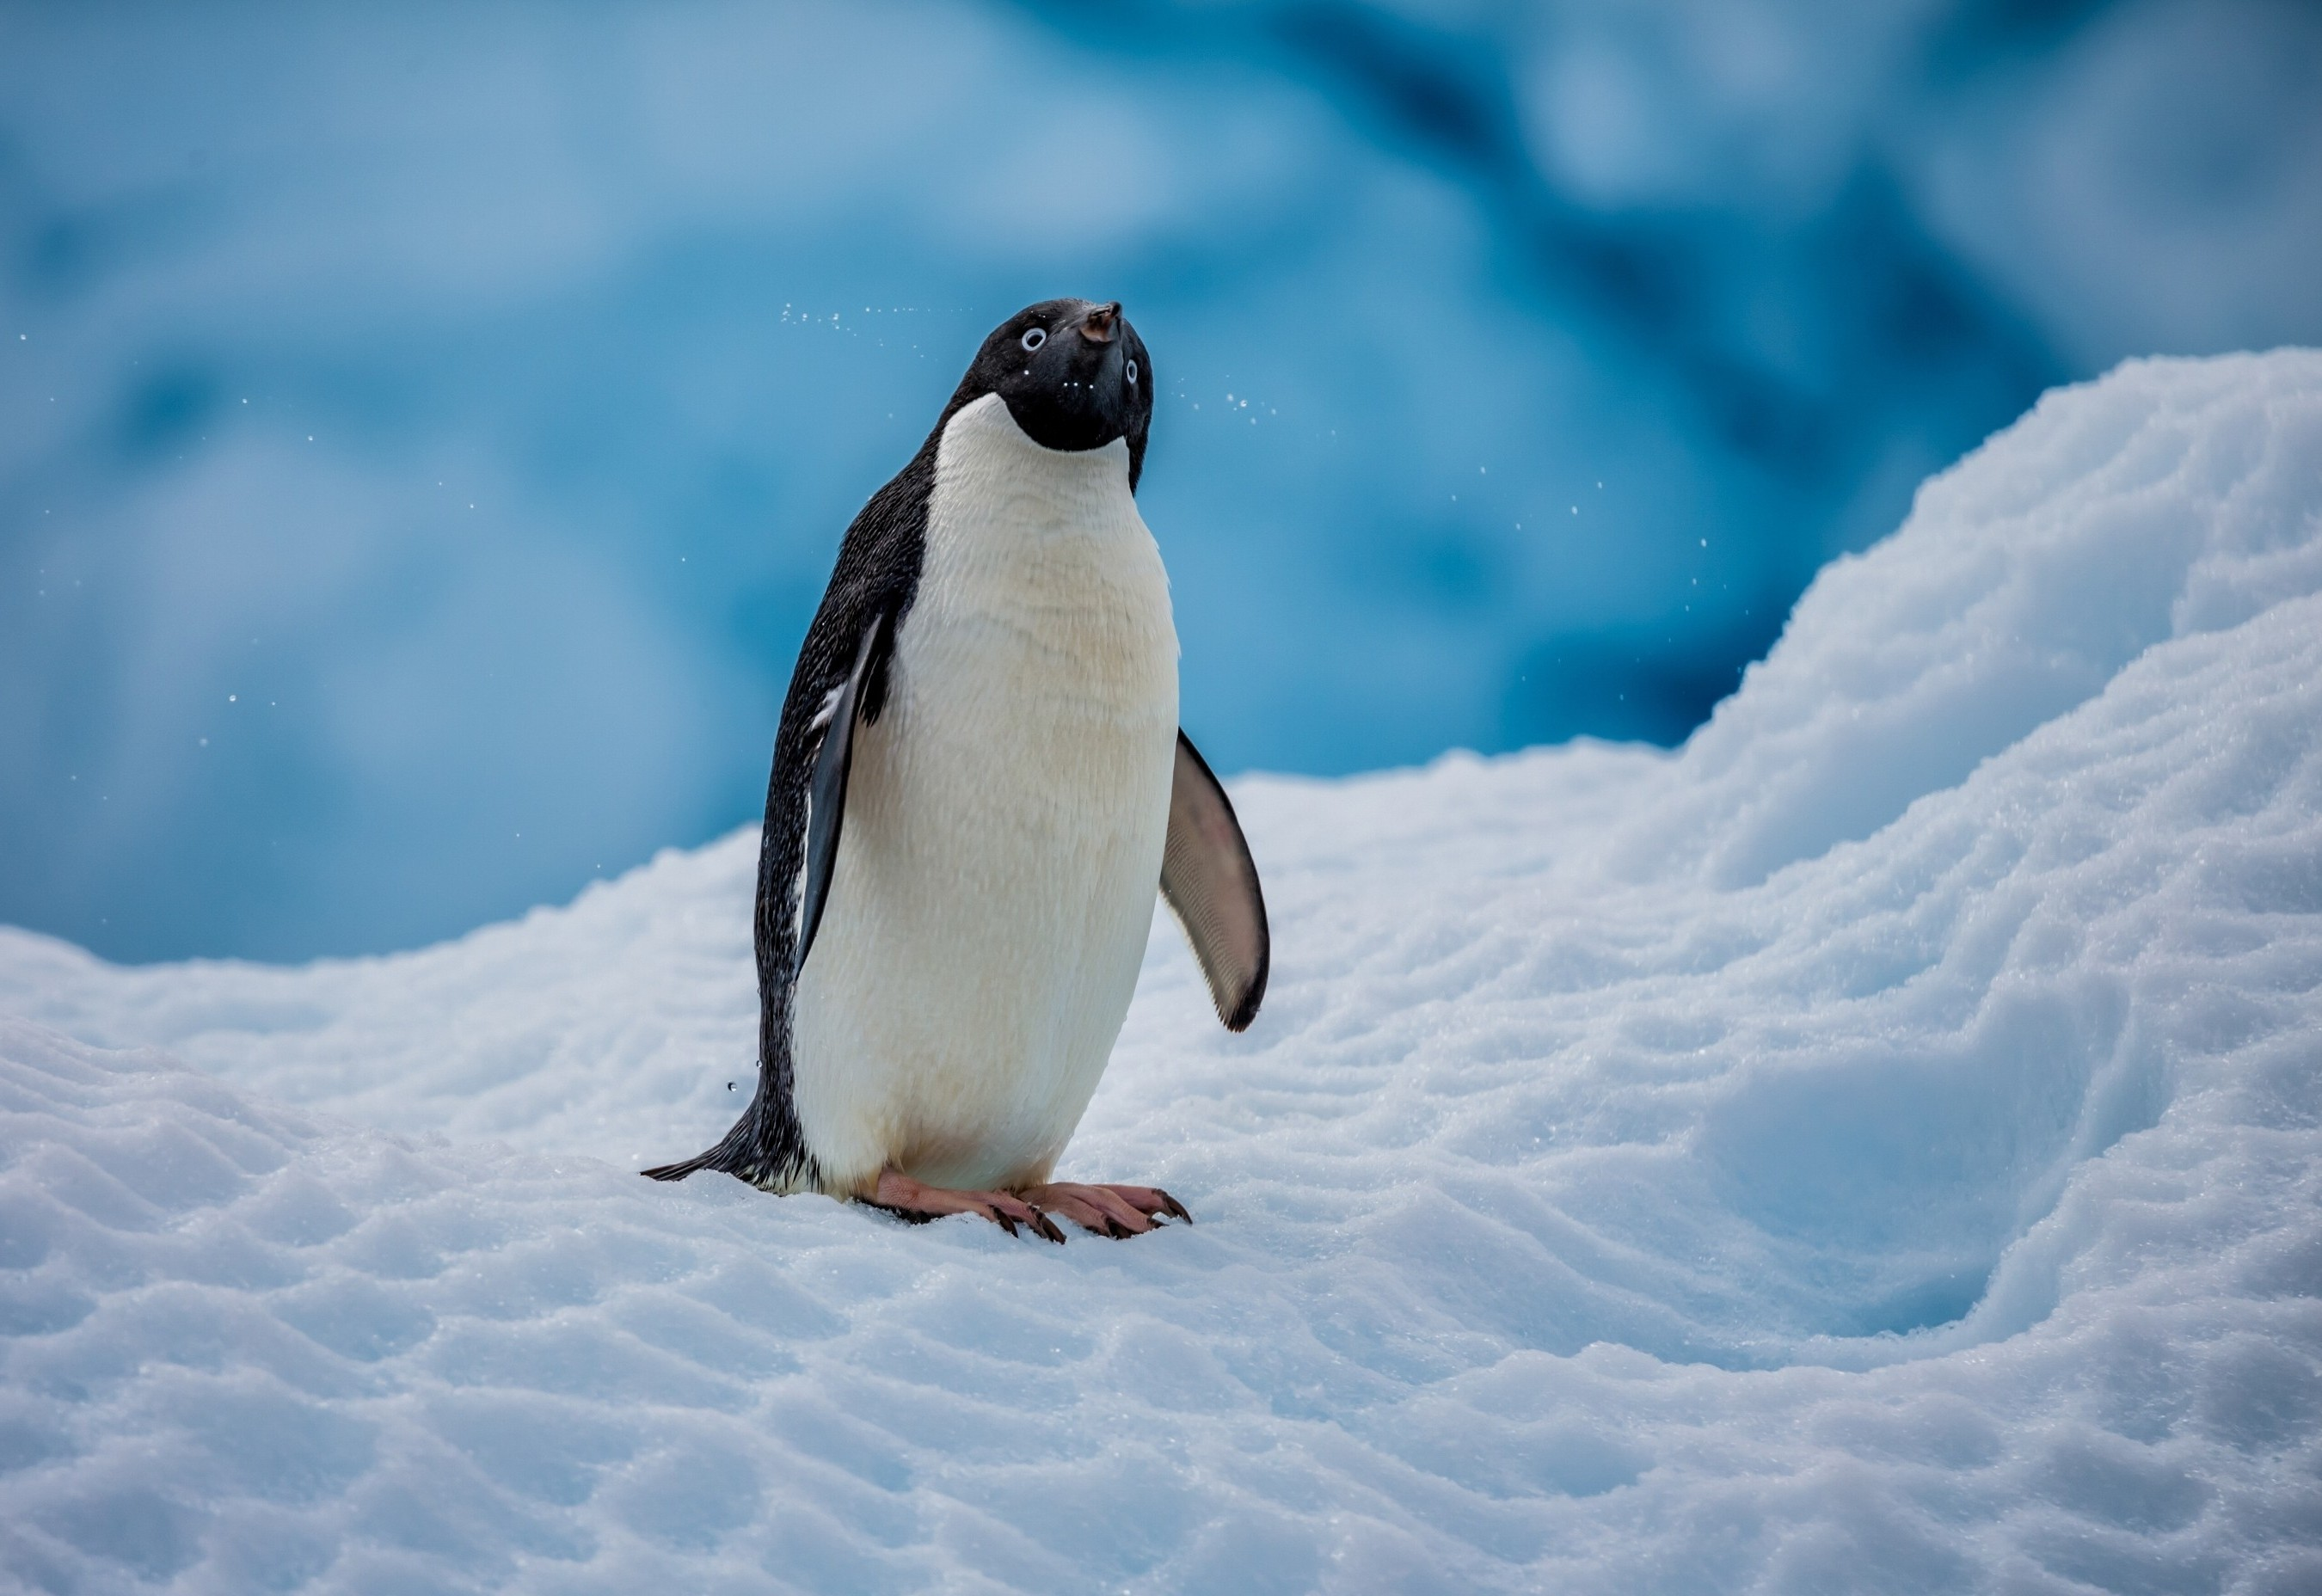 Cute Penguin Wallpaper Hd Penguins Nature Ice Snow Animals Wallpapers Hd